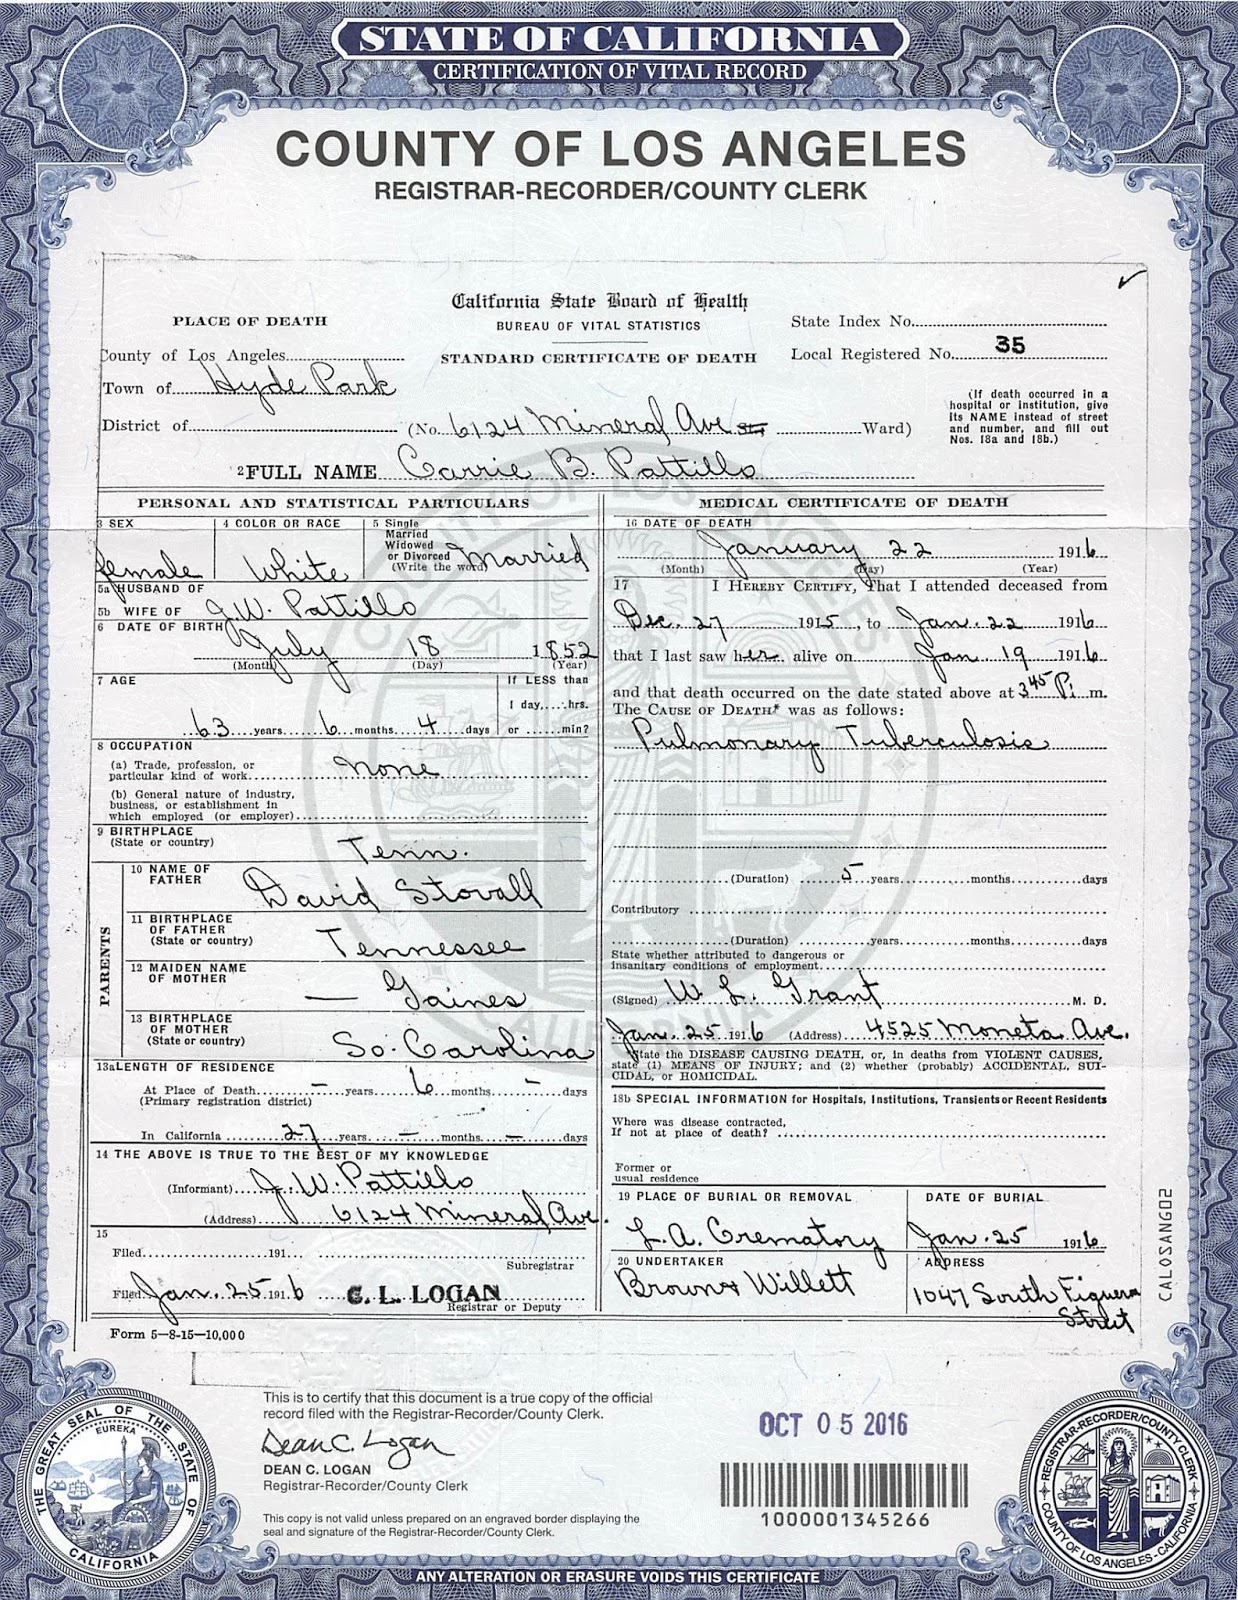 Pattillo thornally ancestors carries death certificate i obtained in los angeles in 2016 aiddatafo Choice Image